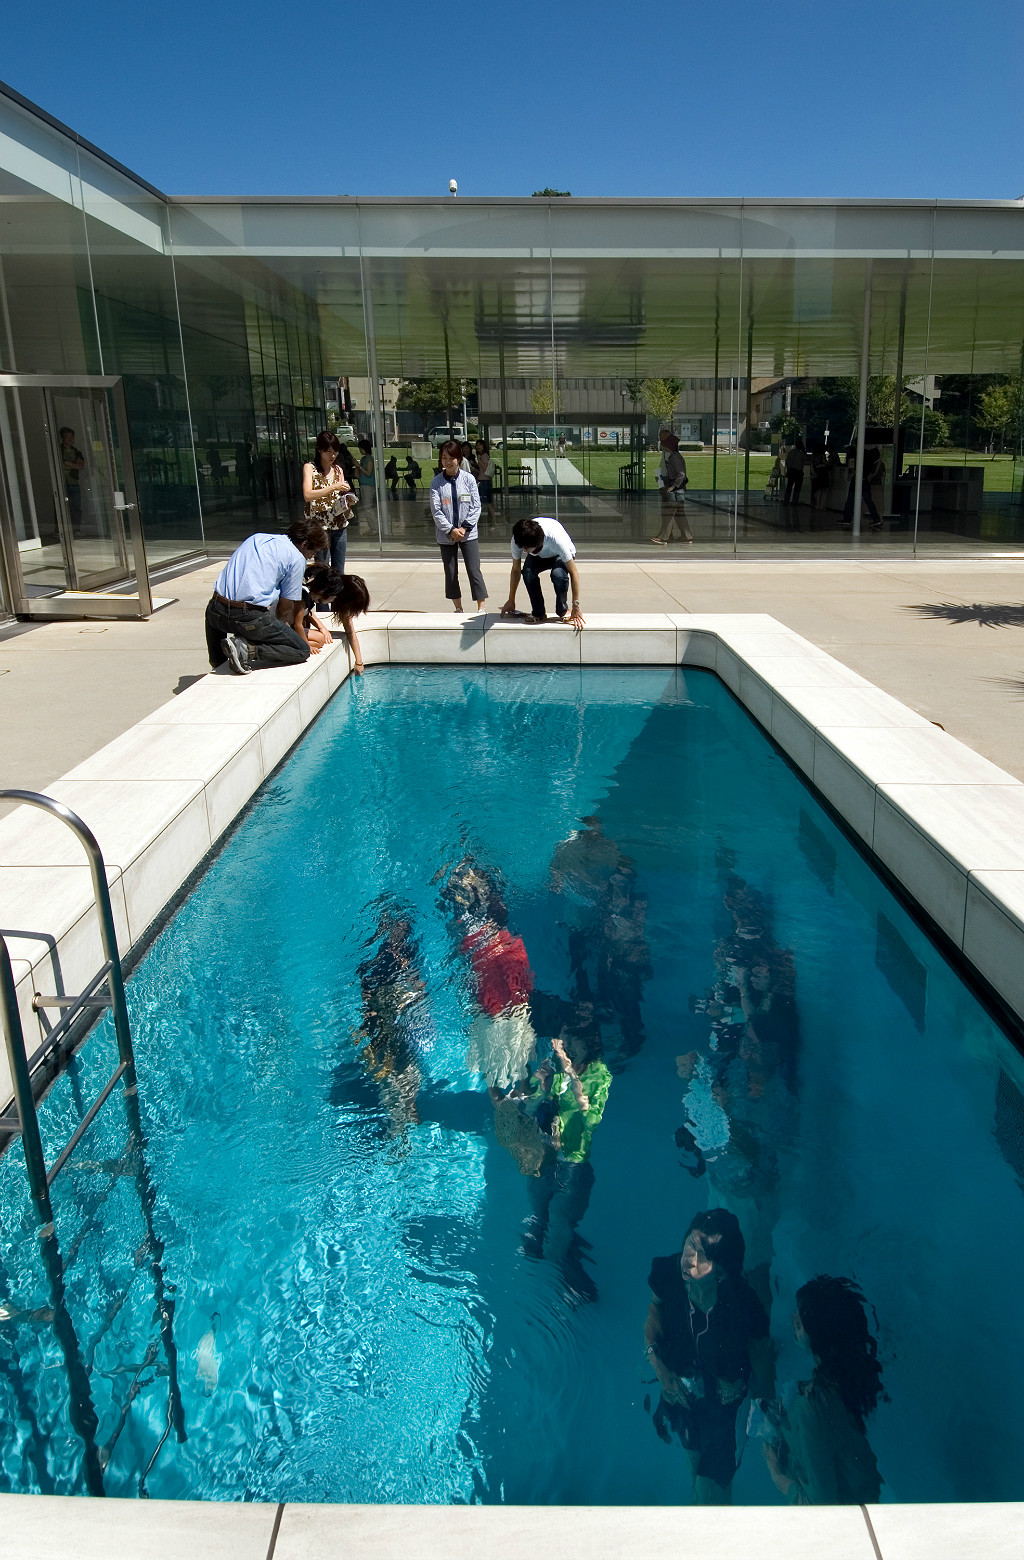 21st Century Museum Swimming Pool